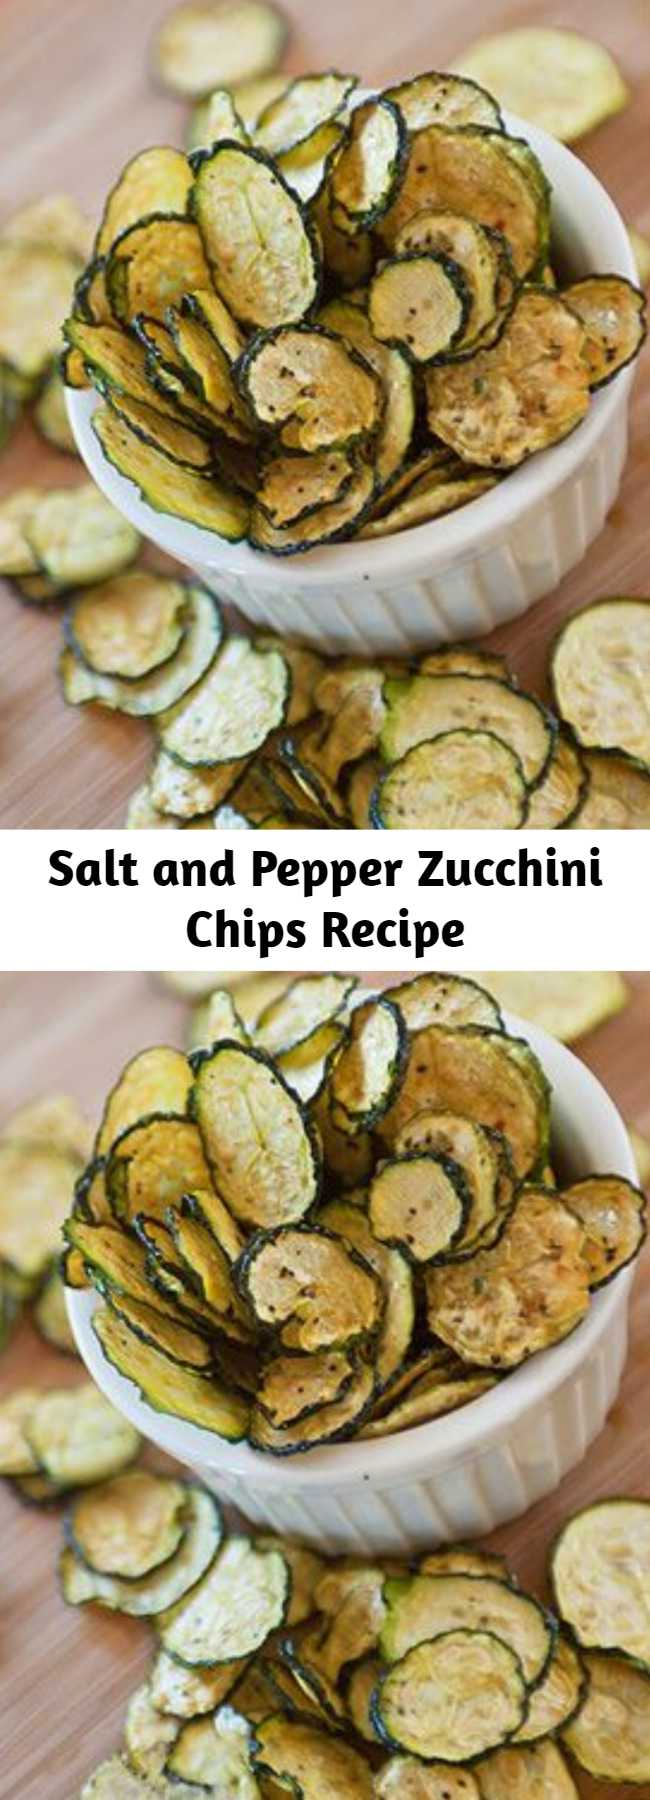 Salt and Pepper Zucchini Chips Recipe - This Dehydrated Zucchini Chips Recipe is SO good.  Full of flavors, slightly spicy. Amazing.